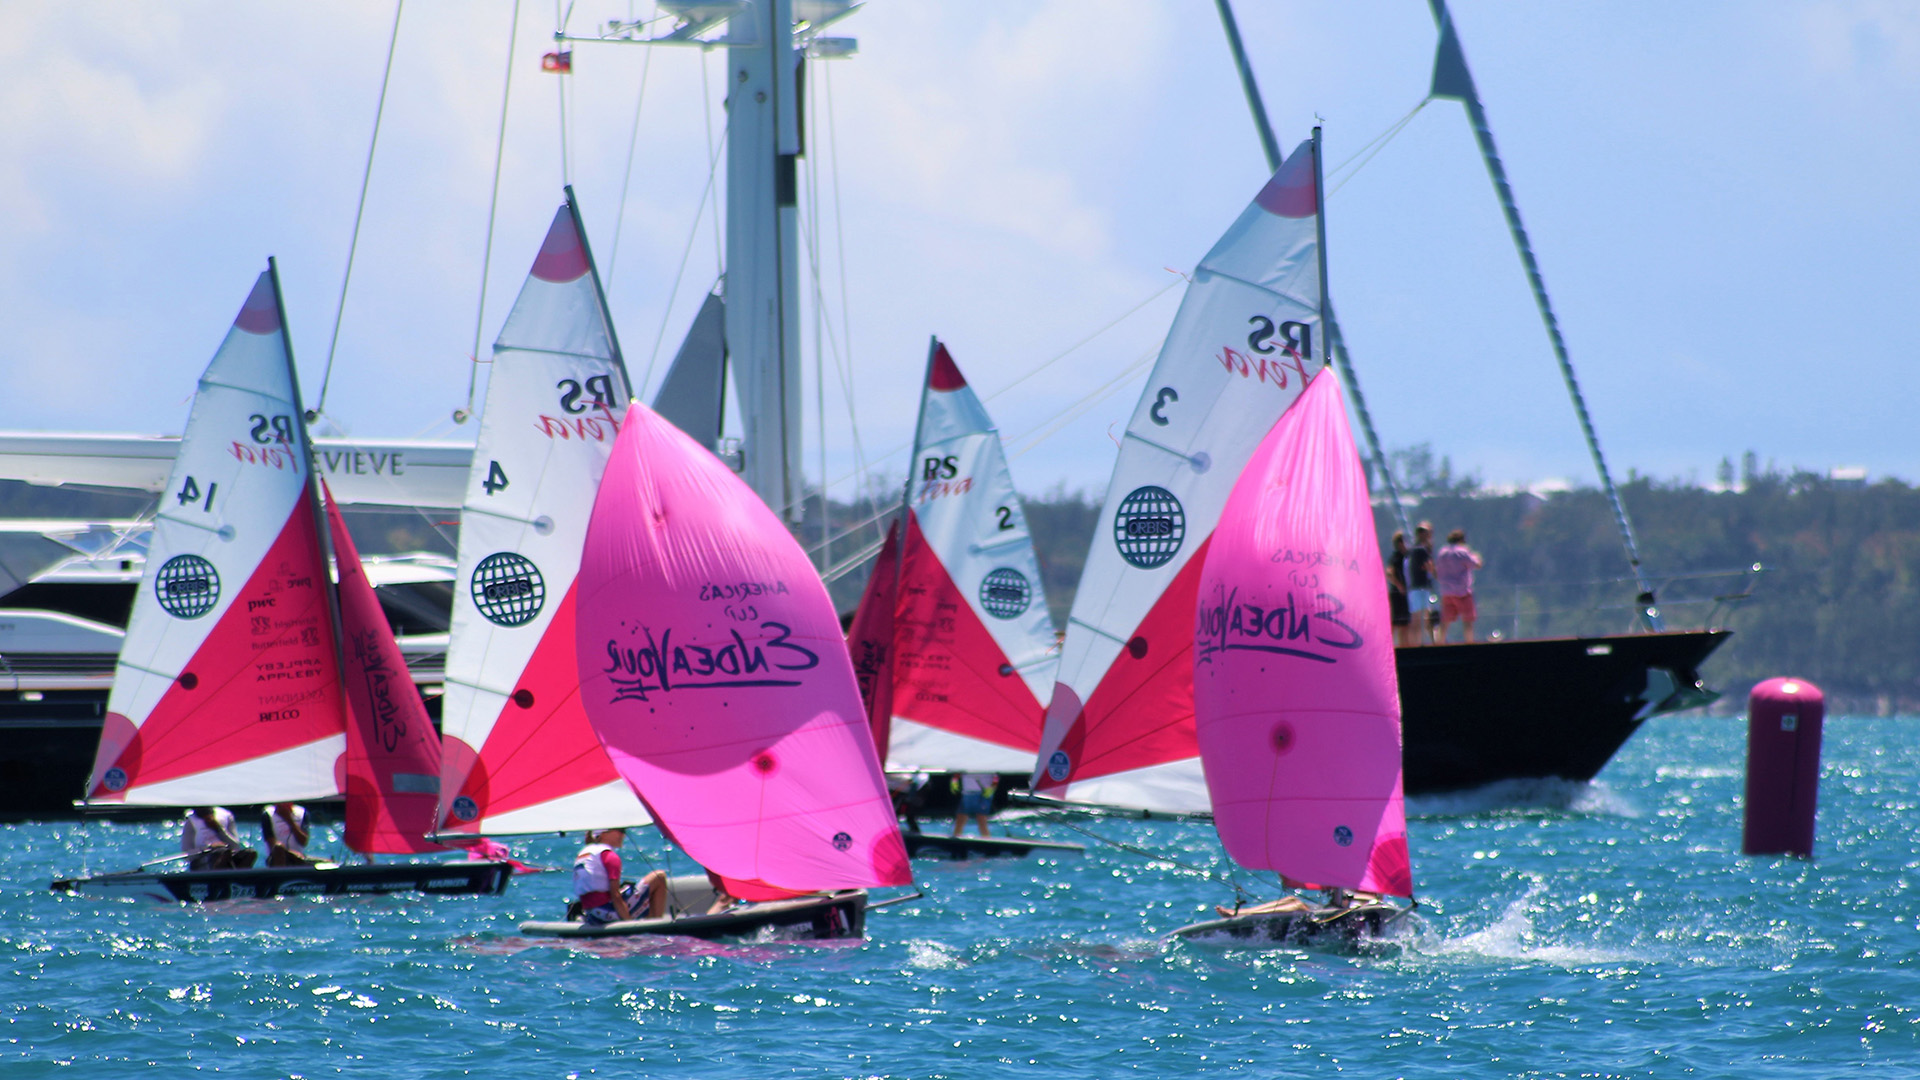 RS Sailing, the world's largest small-sailboat manufacturer.